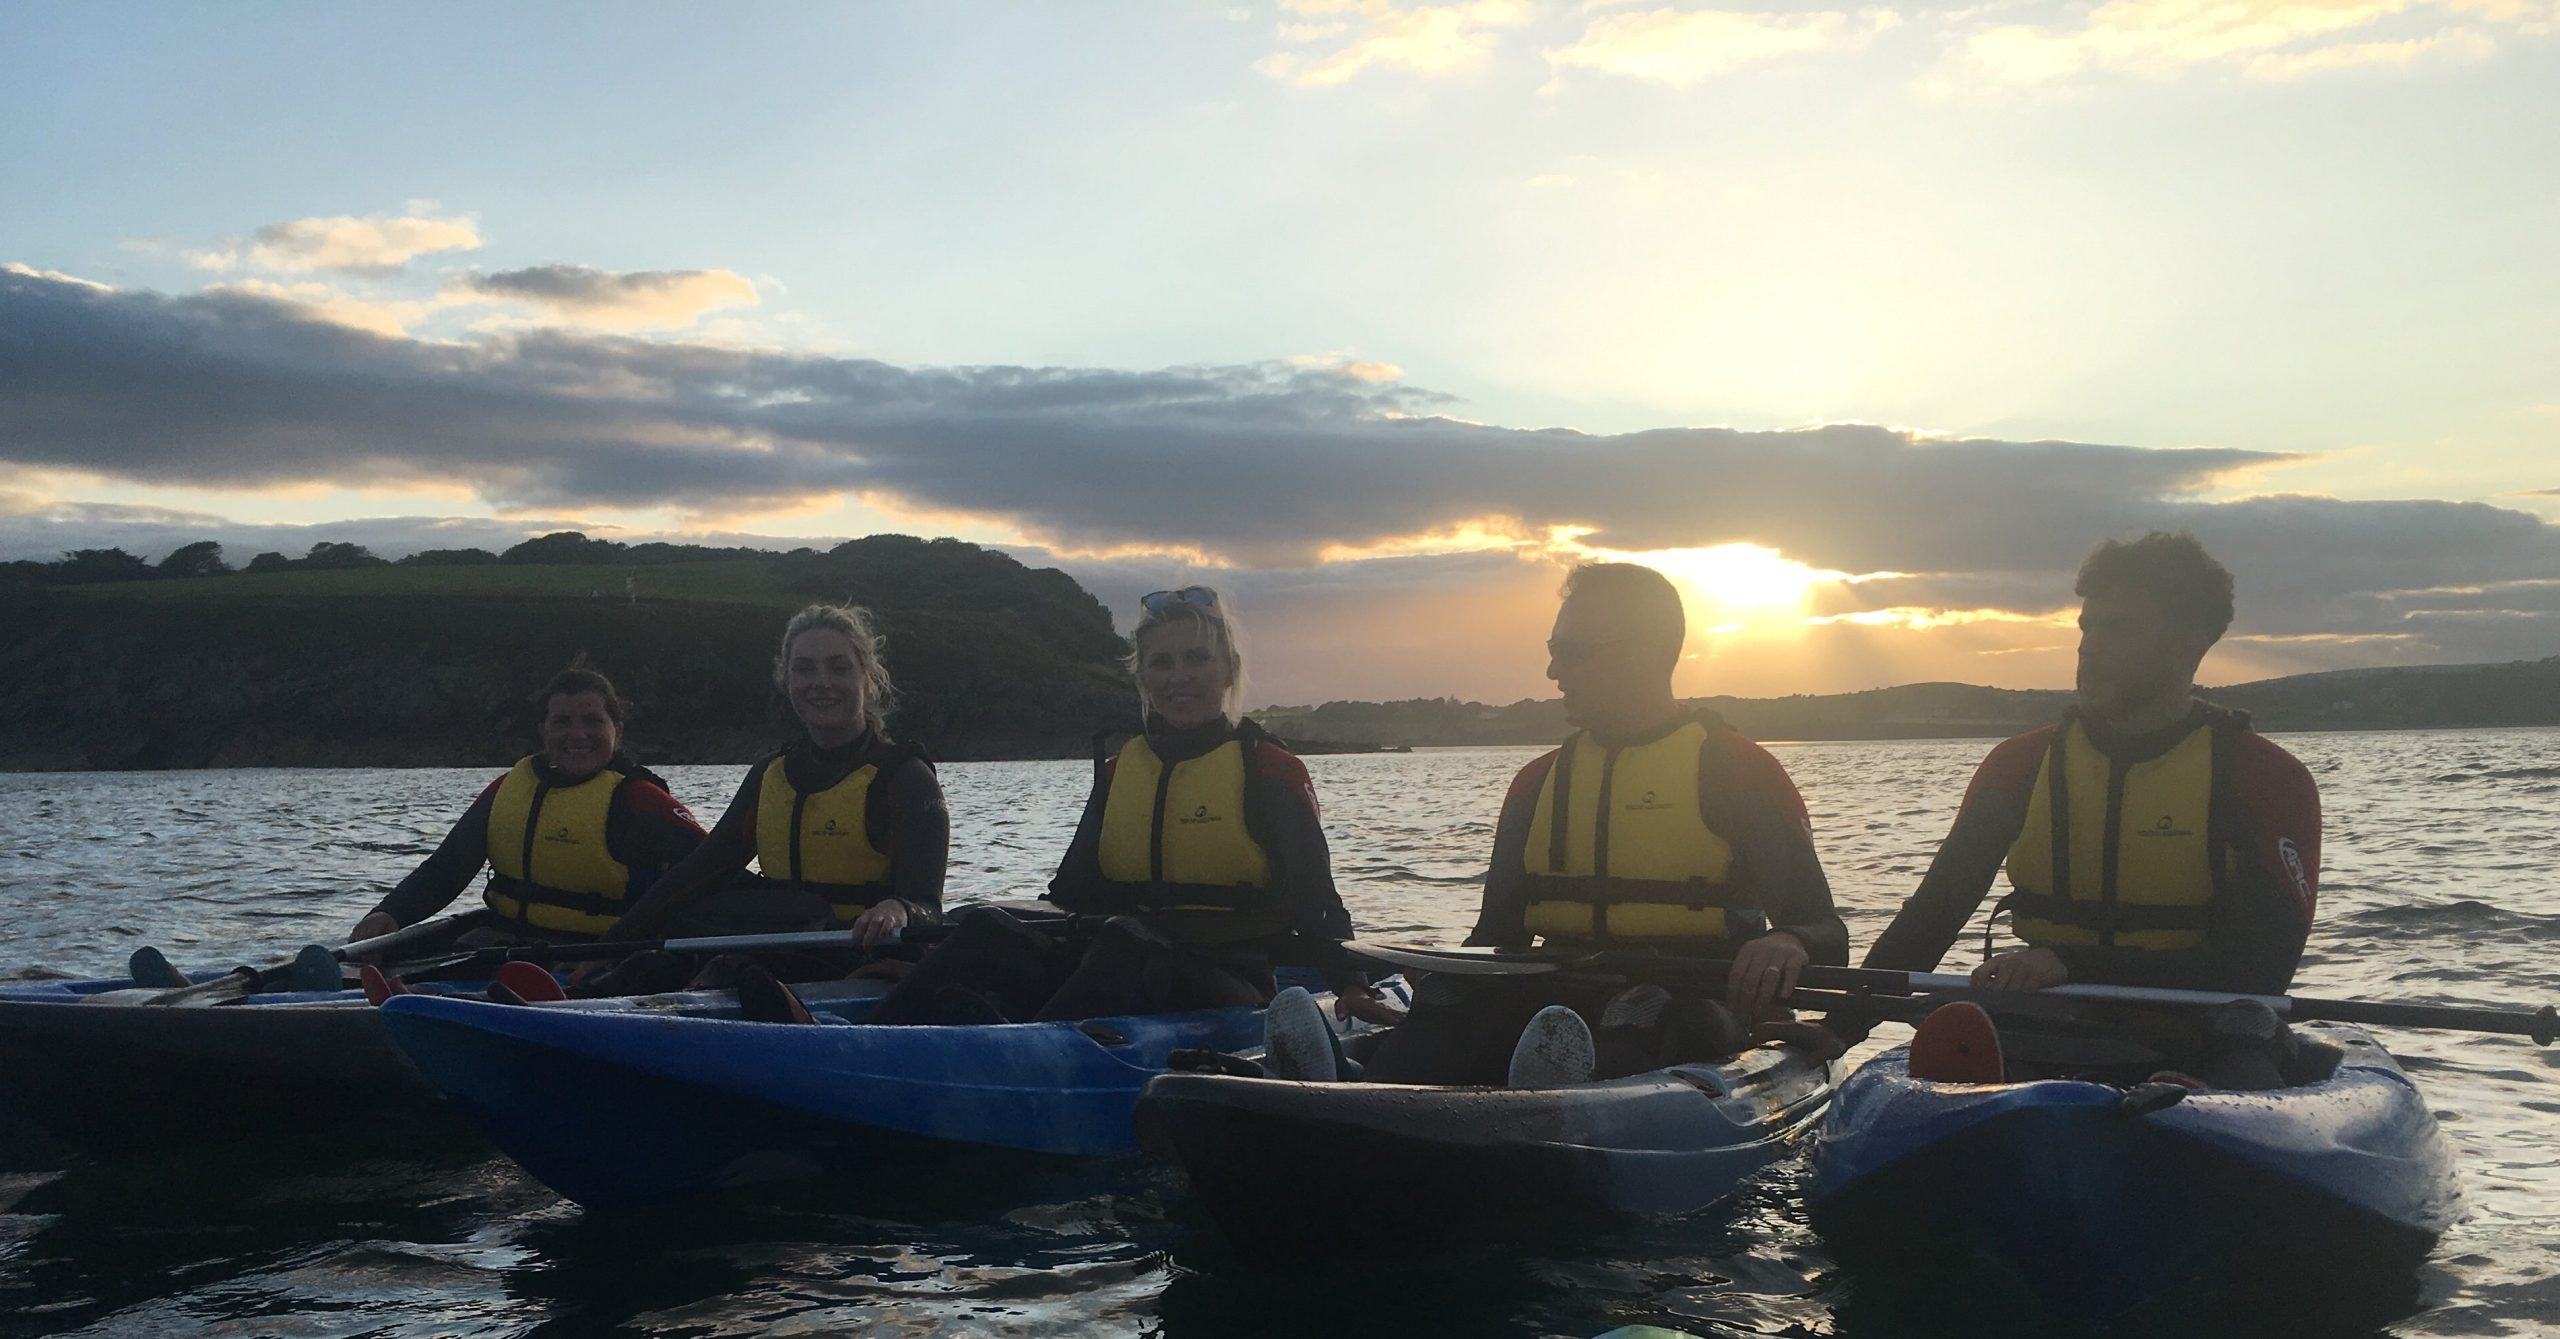 sunset sea kayak coast tour courtmacsherry cork ireland